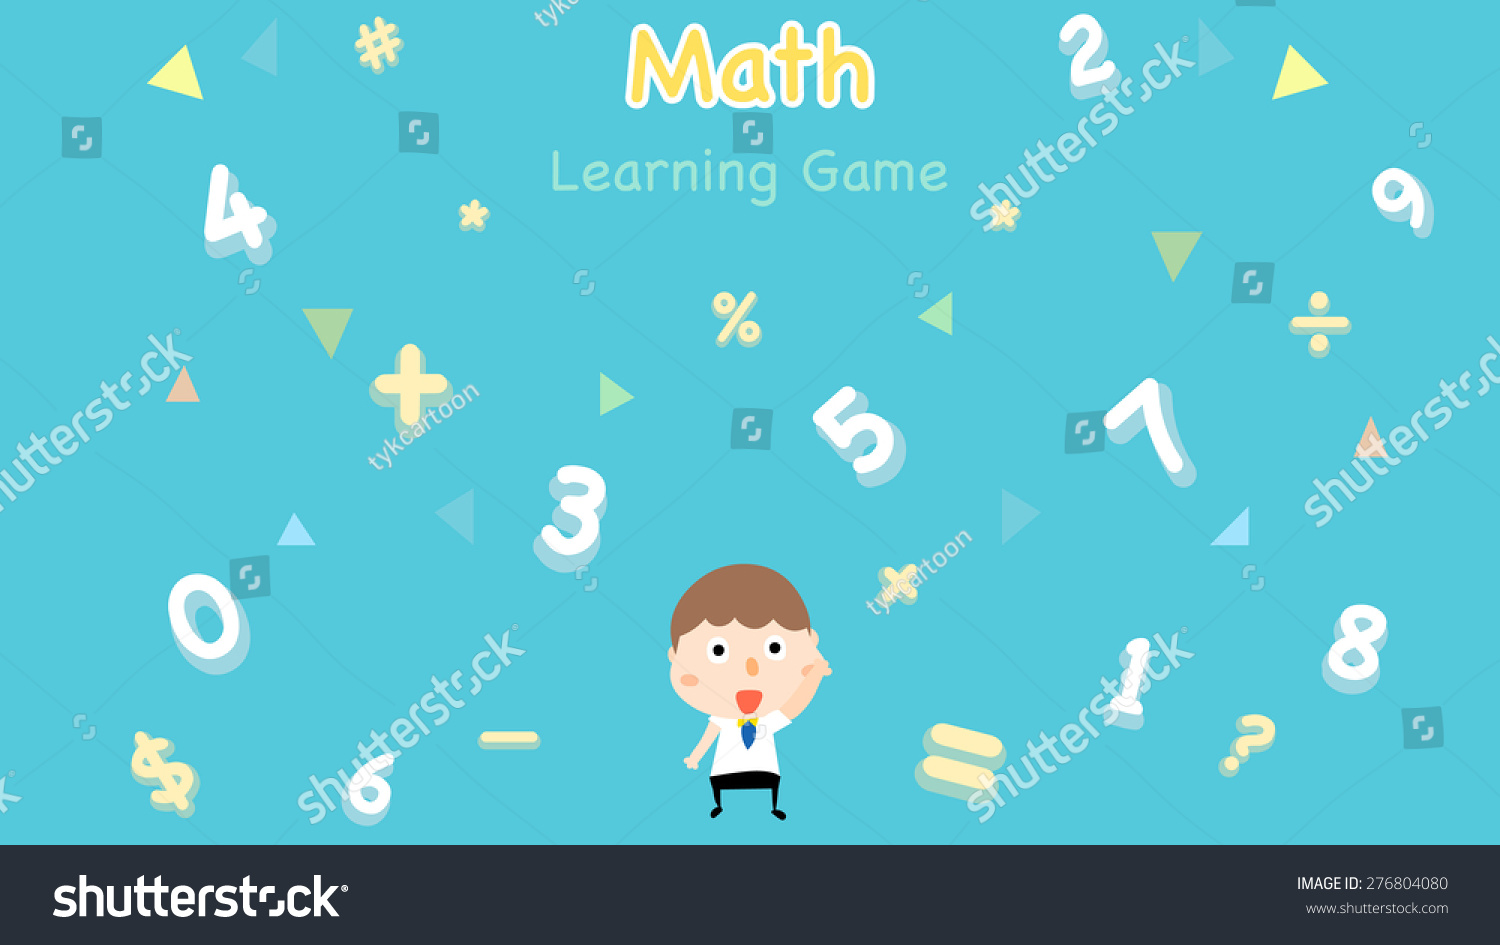 Cartoon Style Math Learning Game Illustration Stock Vector Royalty